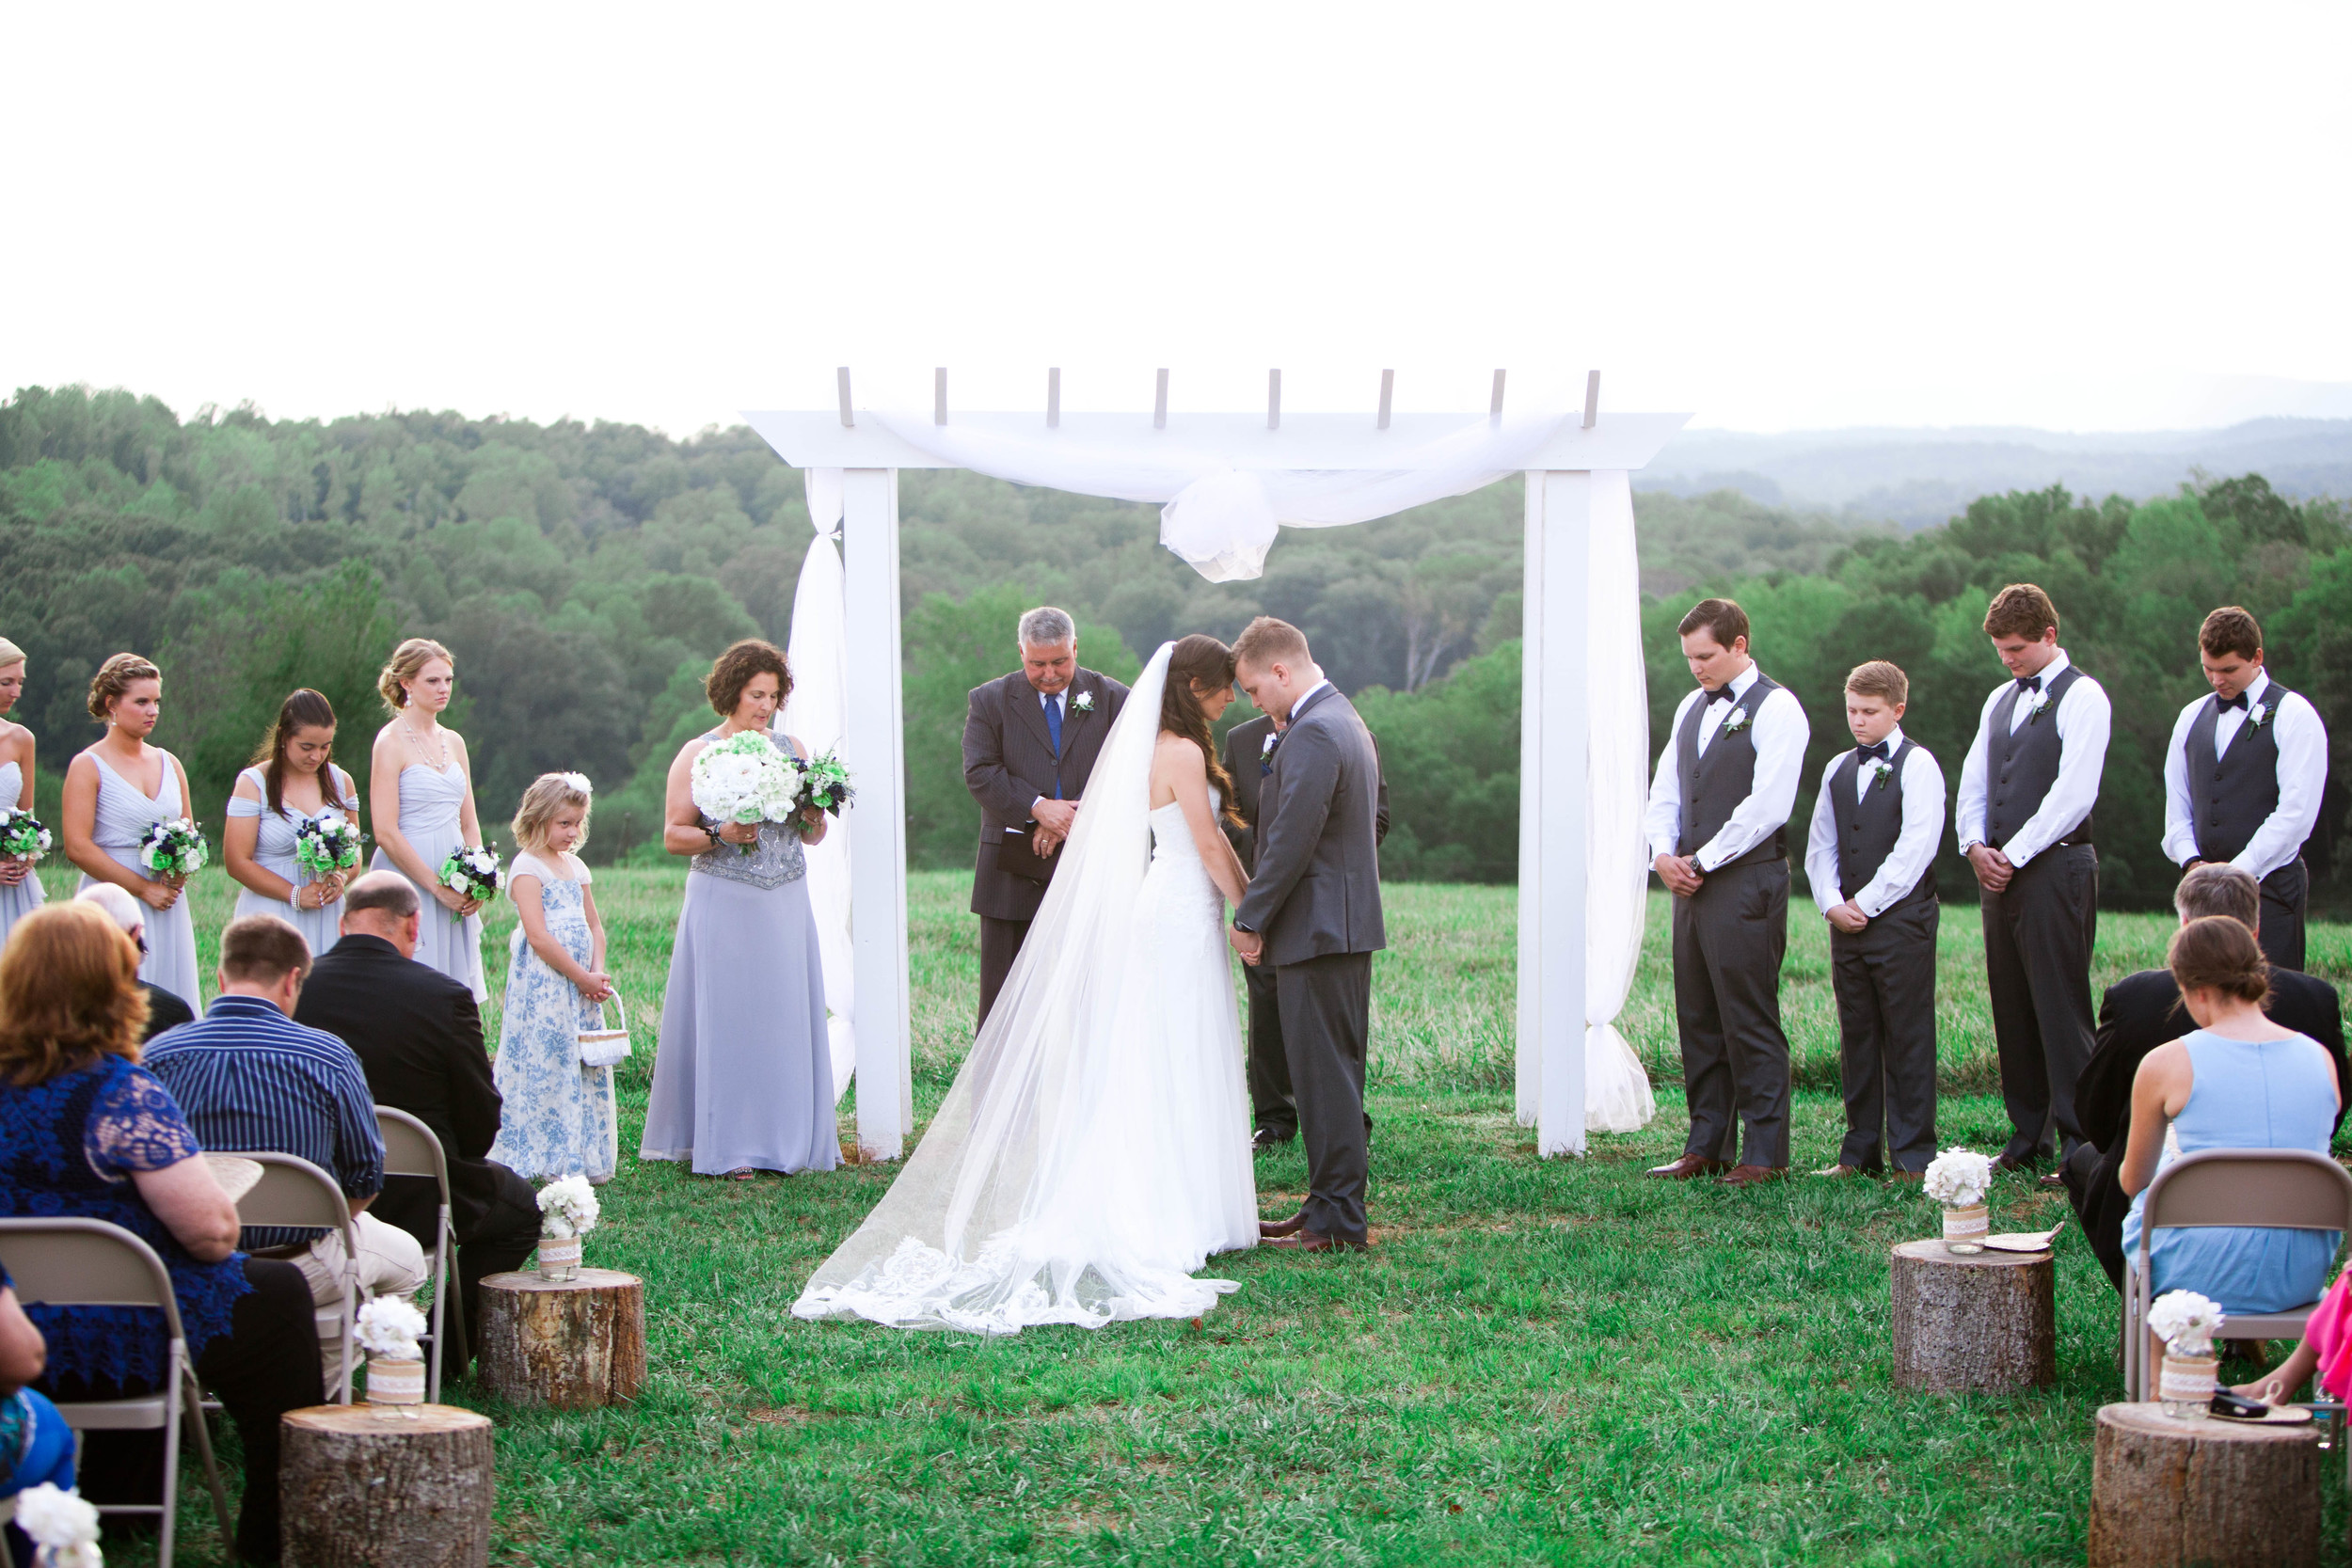 prayer, unplugged ceremony, lindsey plantation, sc wedding photographer, poured out photography, rustic, lace, barn, field